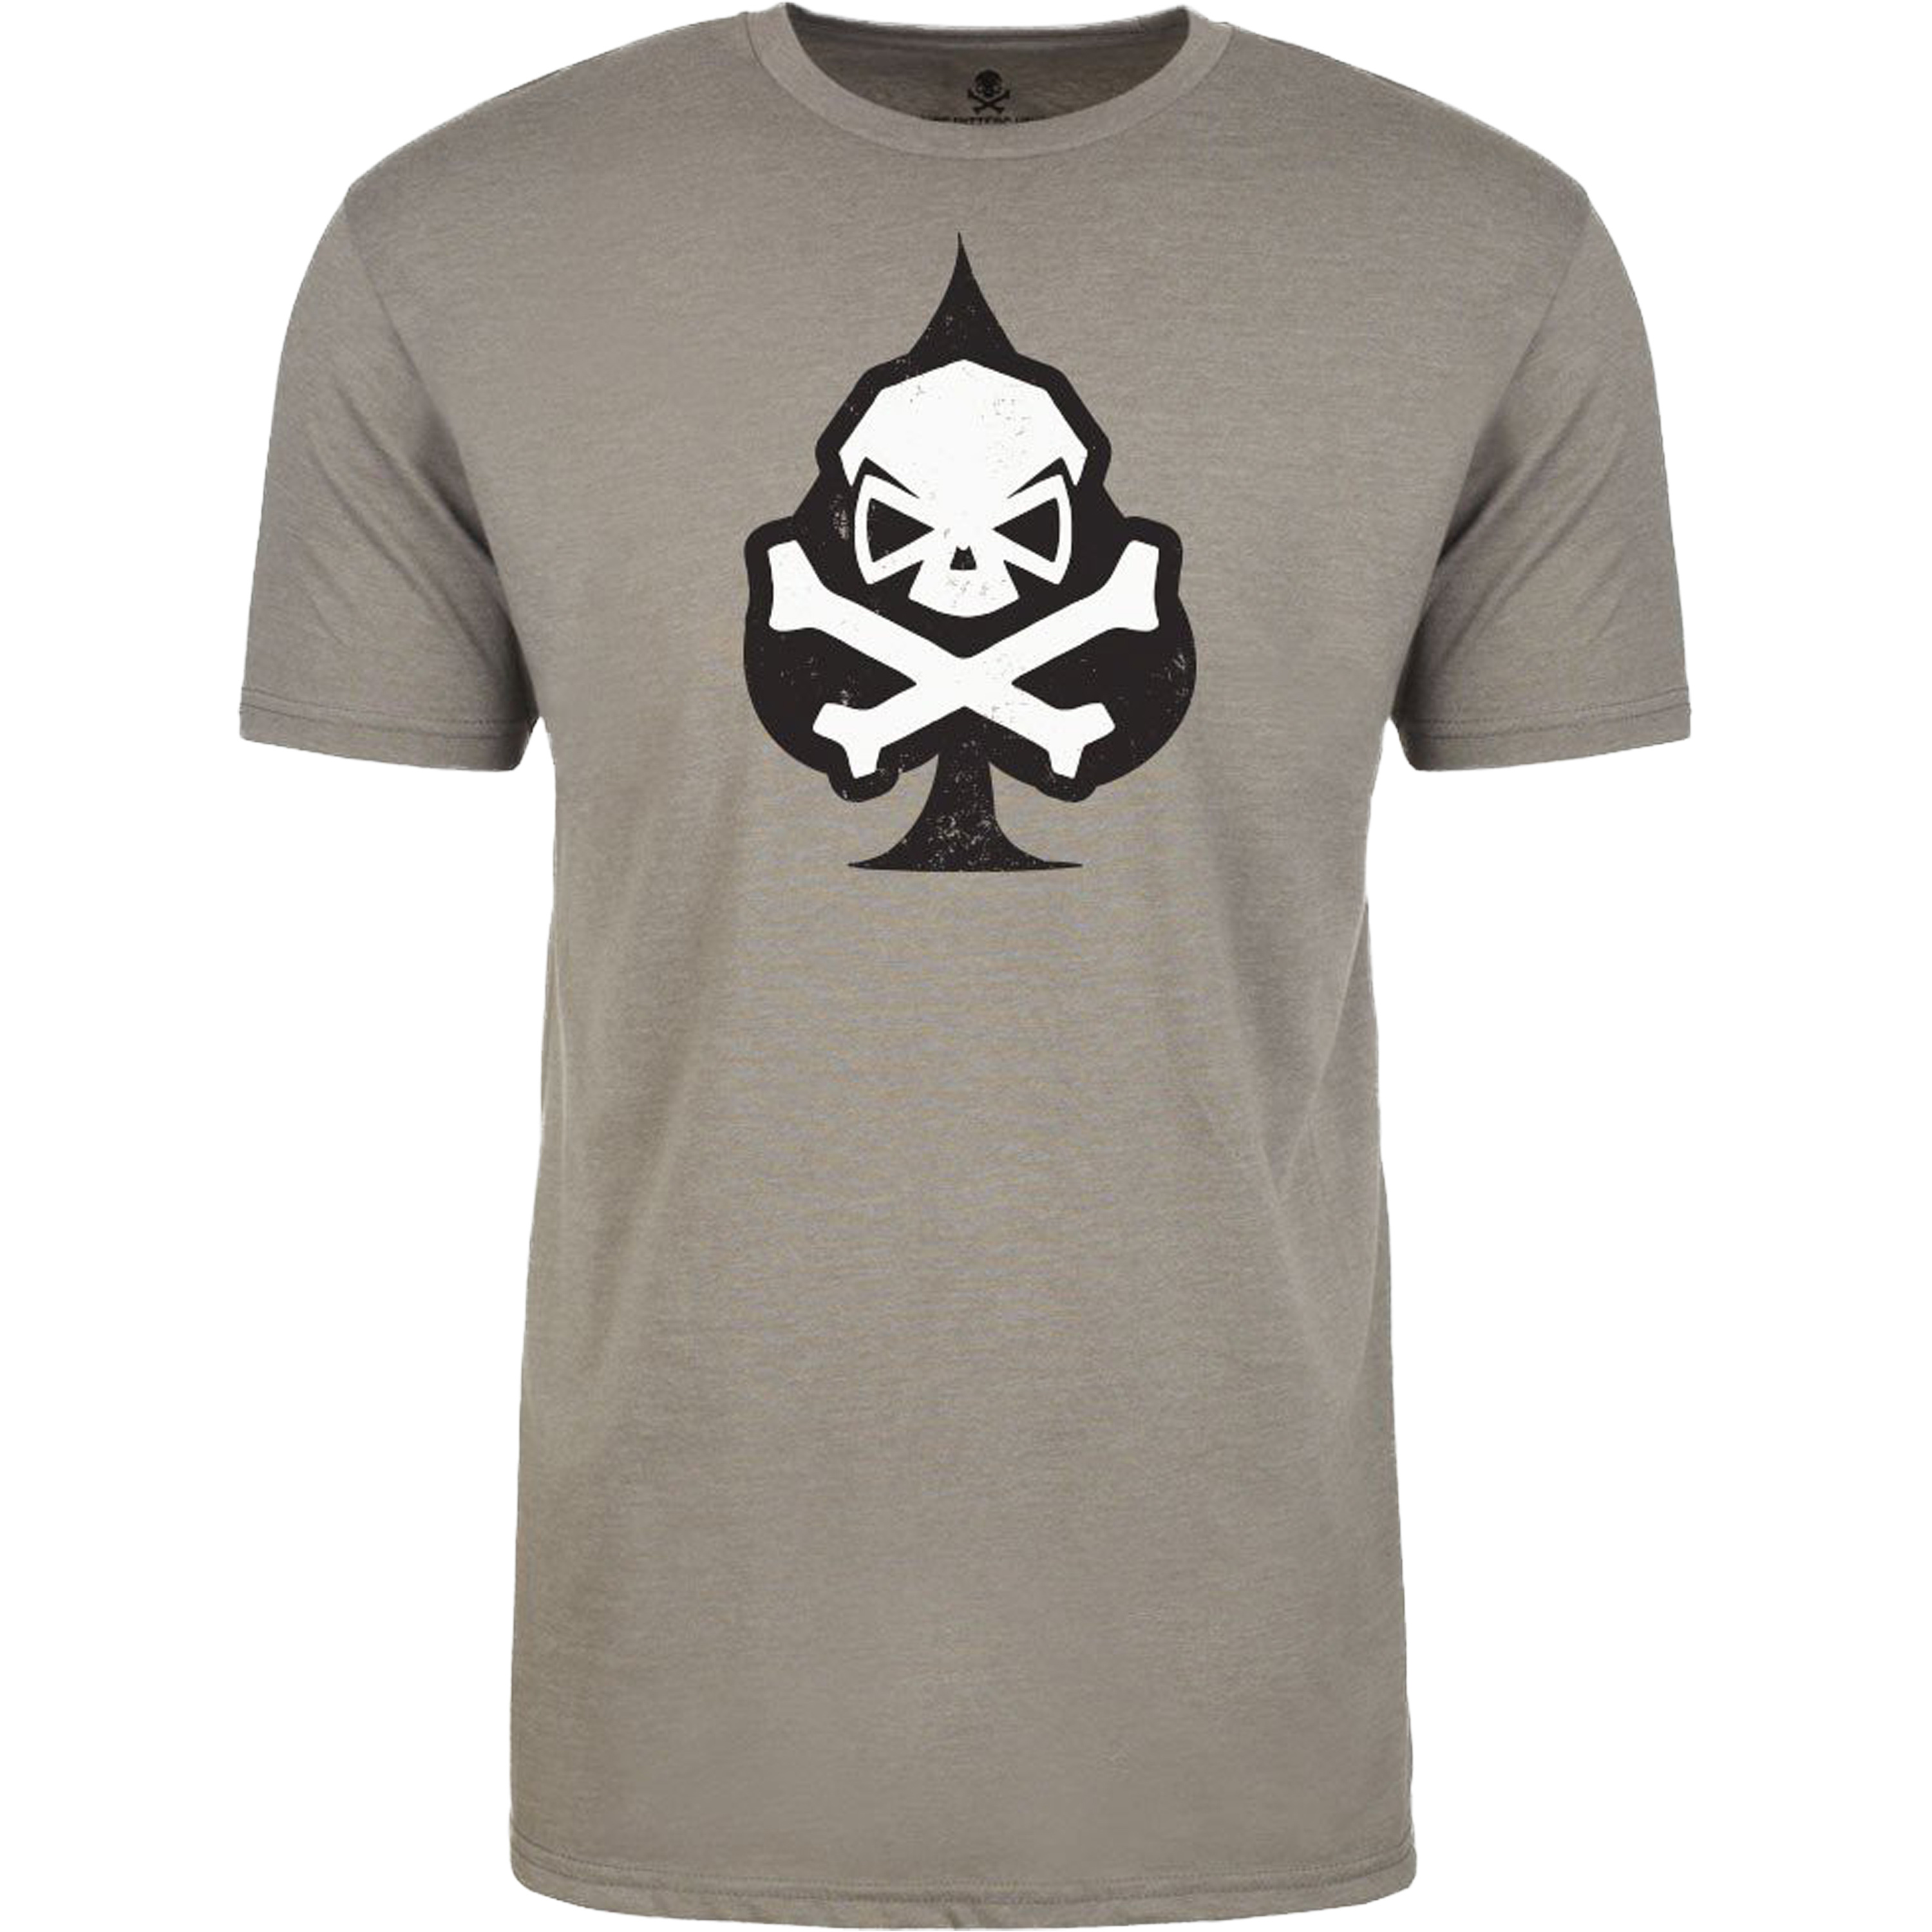 Pipe Hitters Union T-Shirt Ace of Spades gray